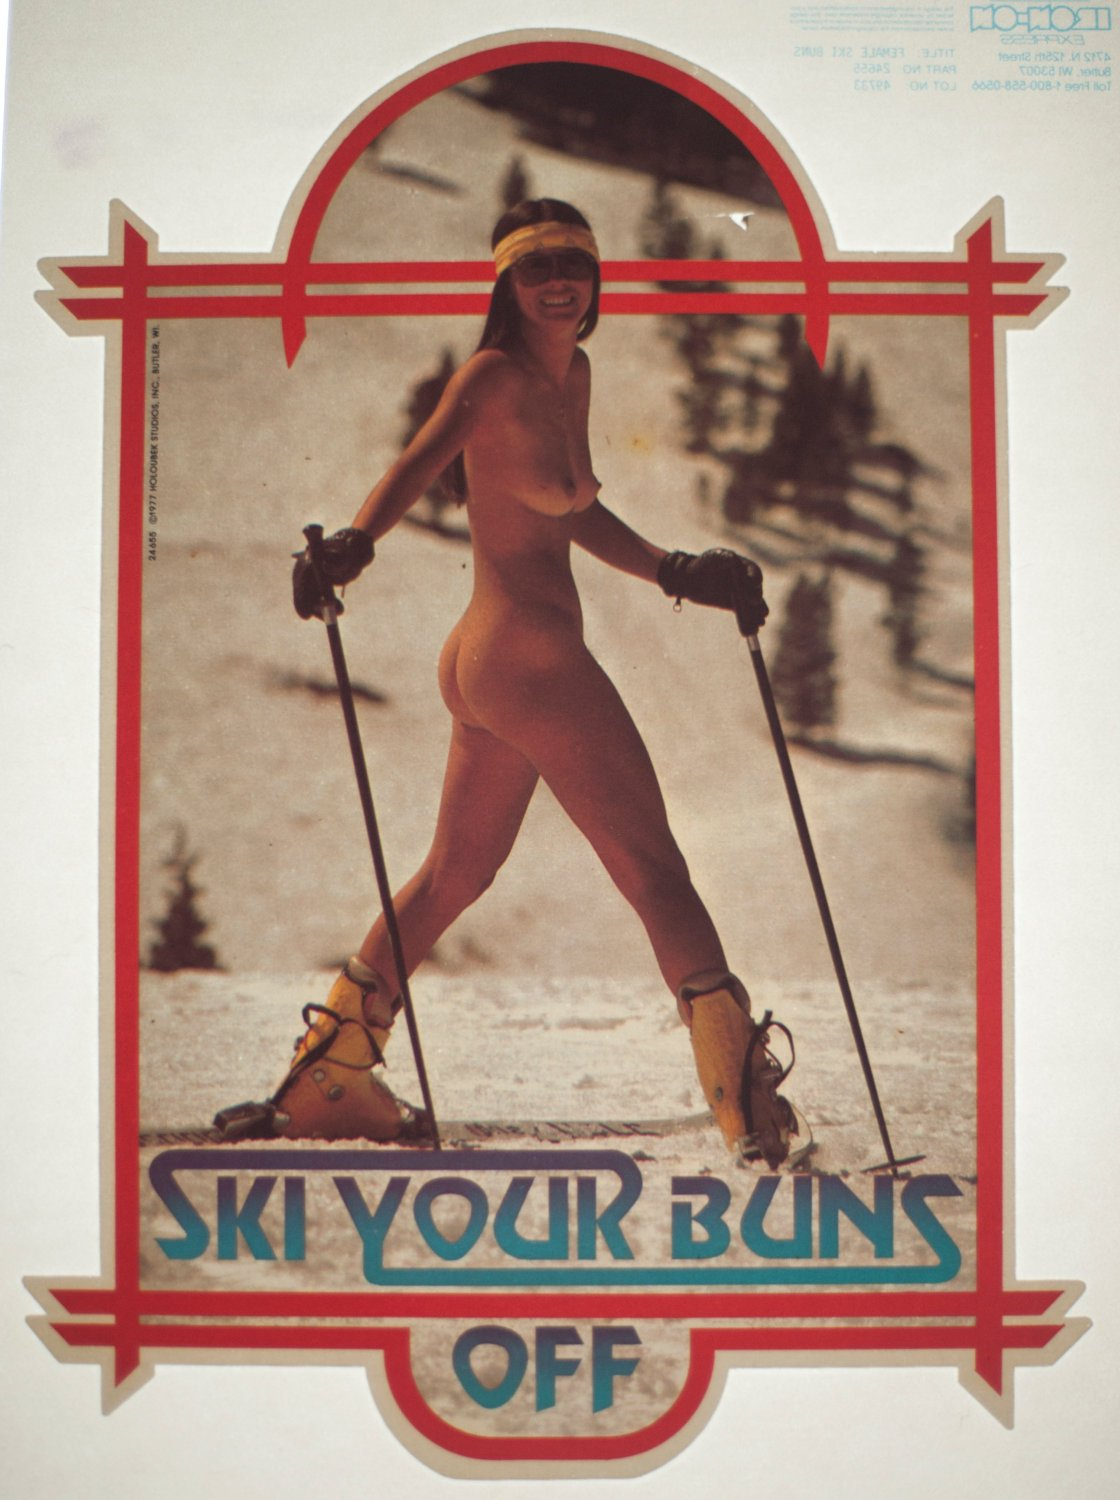 ski yours buns off